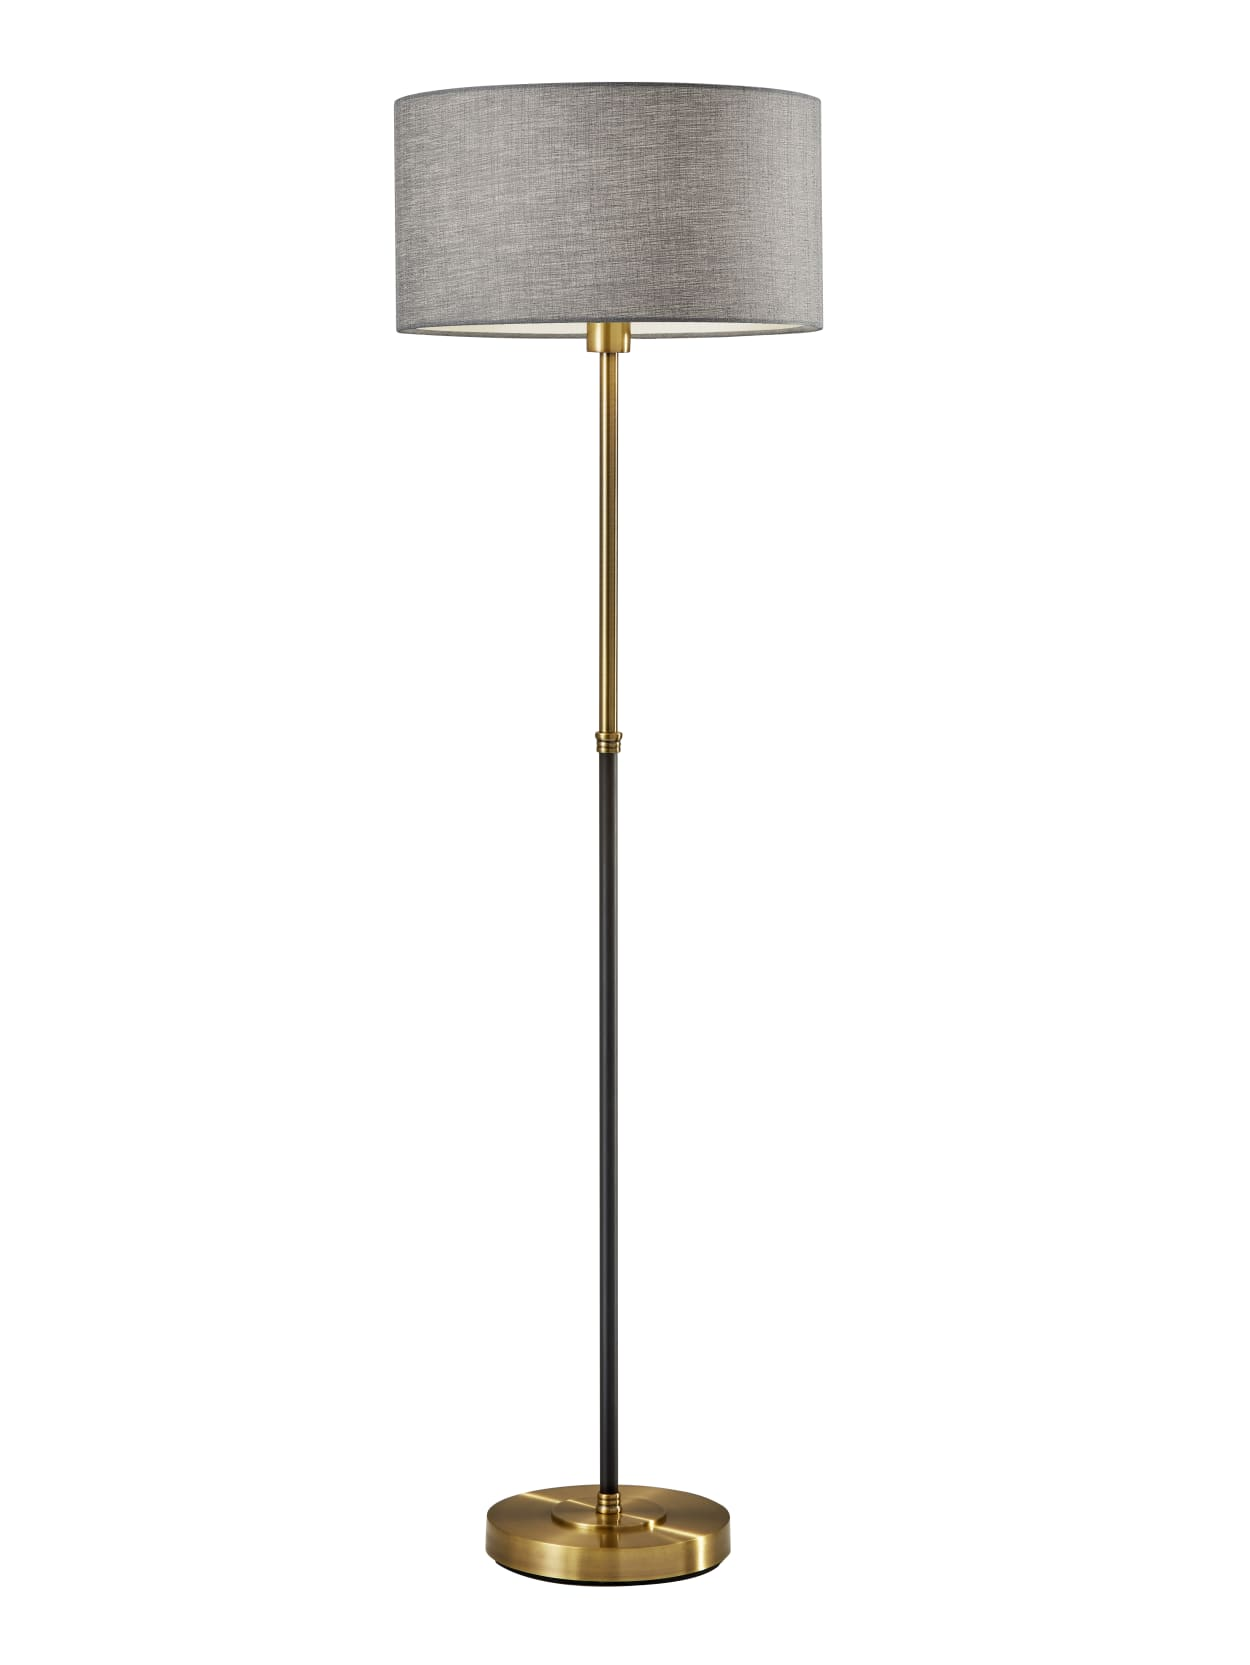 Image of: Adesso Bergen Floor Lamp 59 H Gray Shadeblack And Antique Brass Base Office Depot